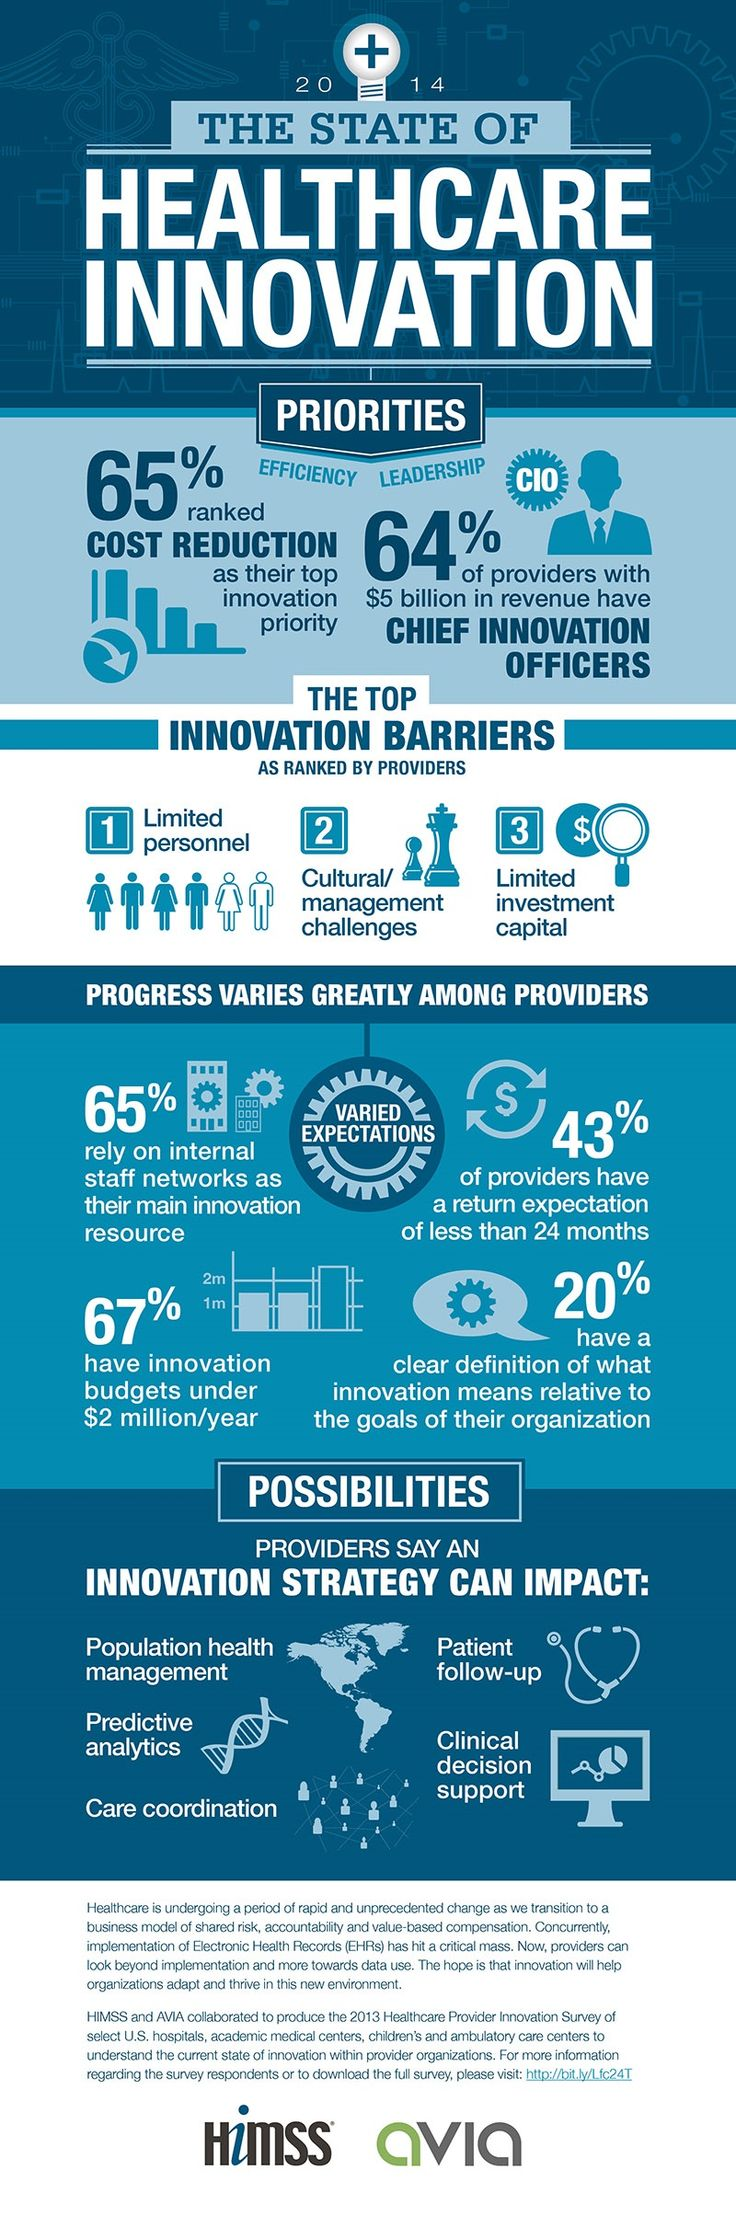 HIMSS: The State of Healthcare Innovation 2014 Infographic - ht @HIT Consultant Media